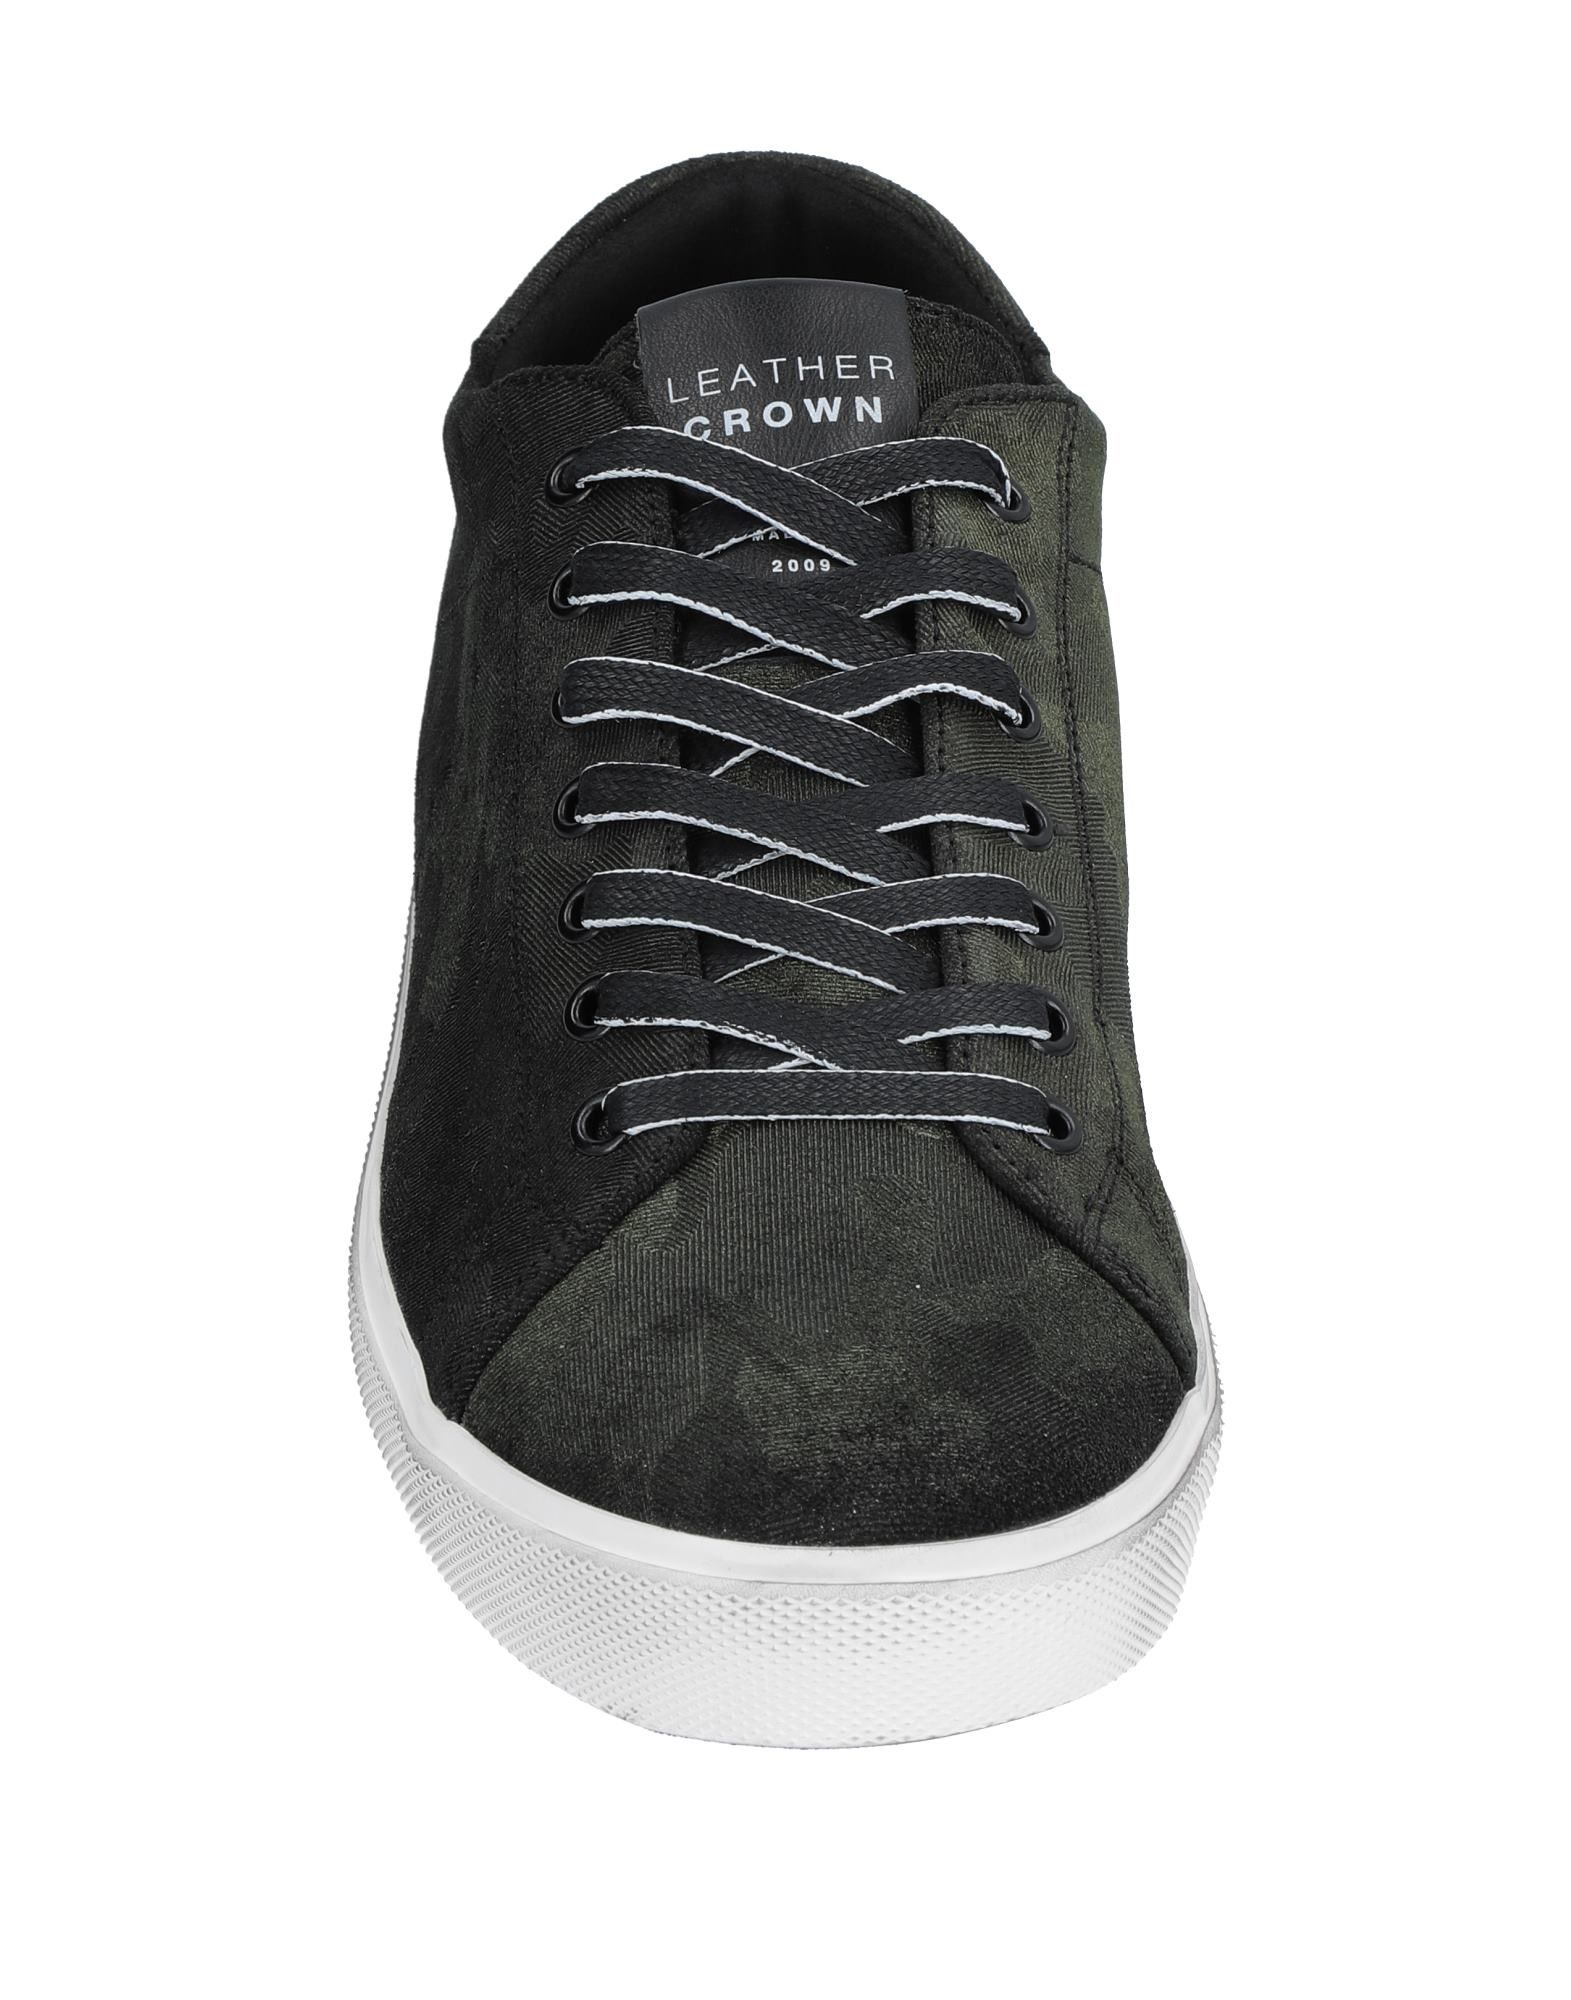 Leather Crown Sneakers - Men Leather Leather Leather Crown Sneakers online on  Australia - 11536383FJ 92e7bc